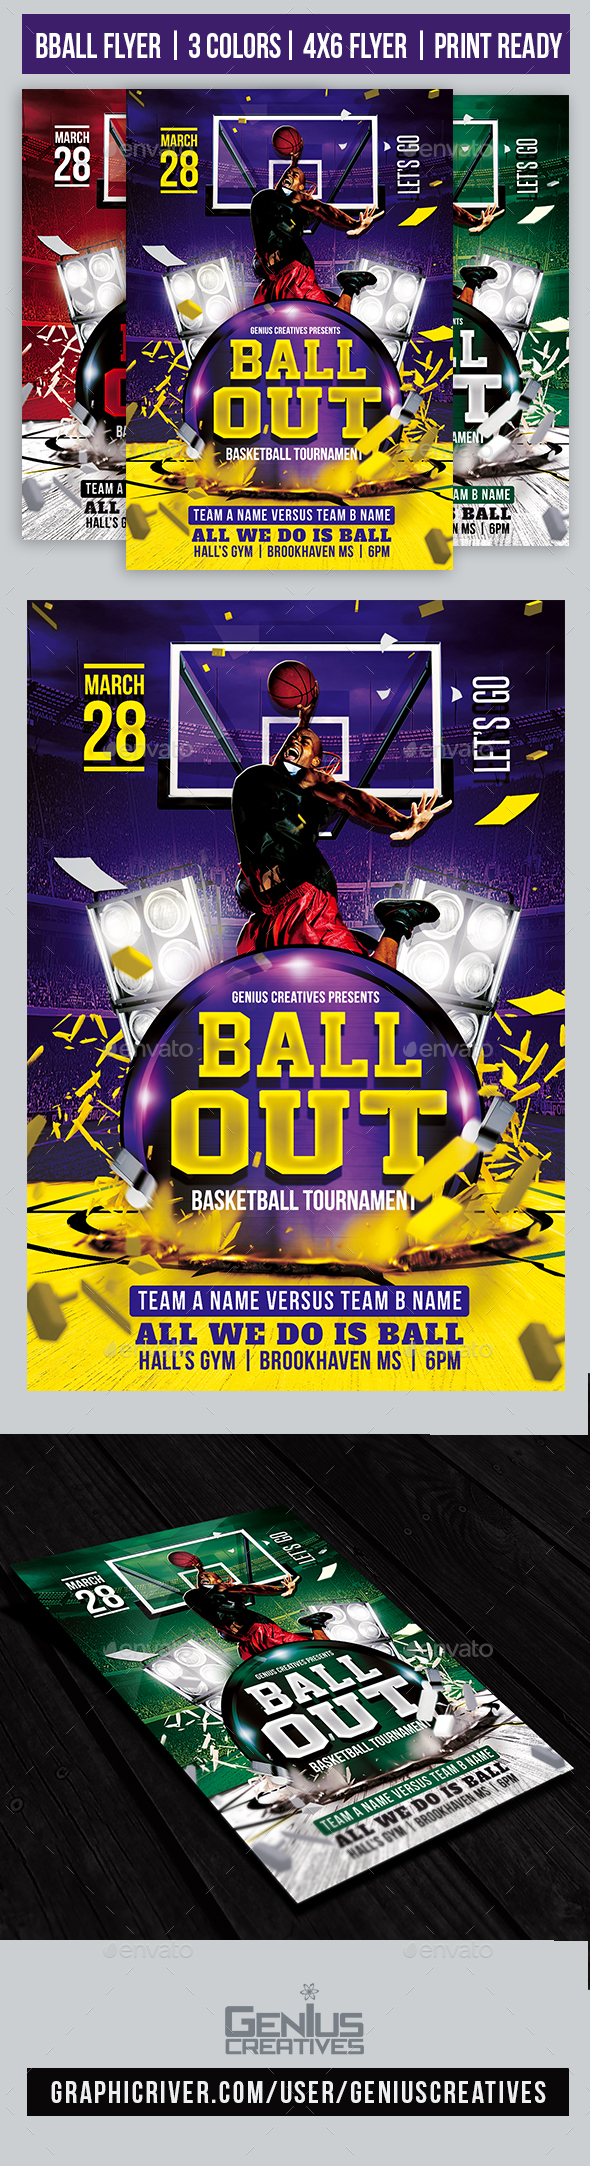 Ball Out Basketball Flyer Template - Sports Events